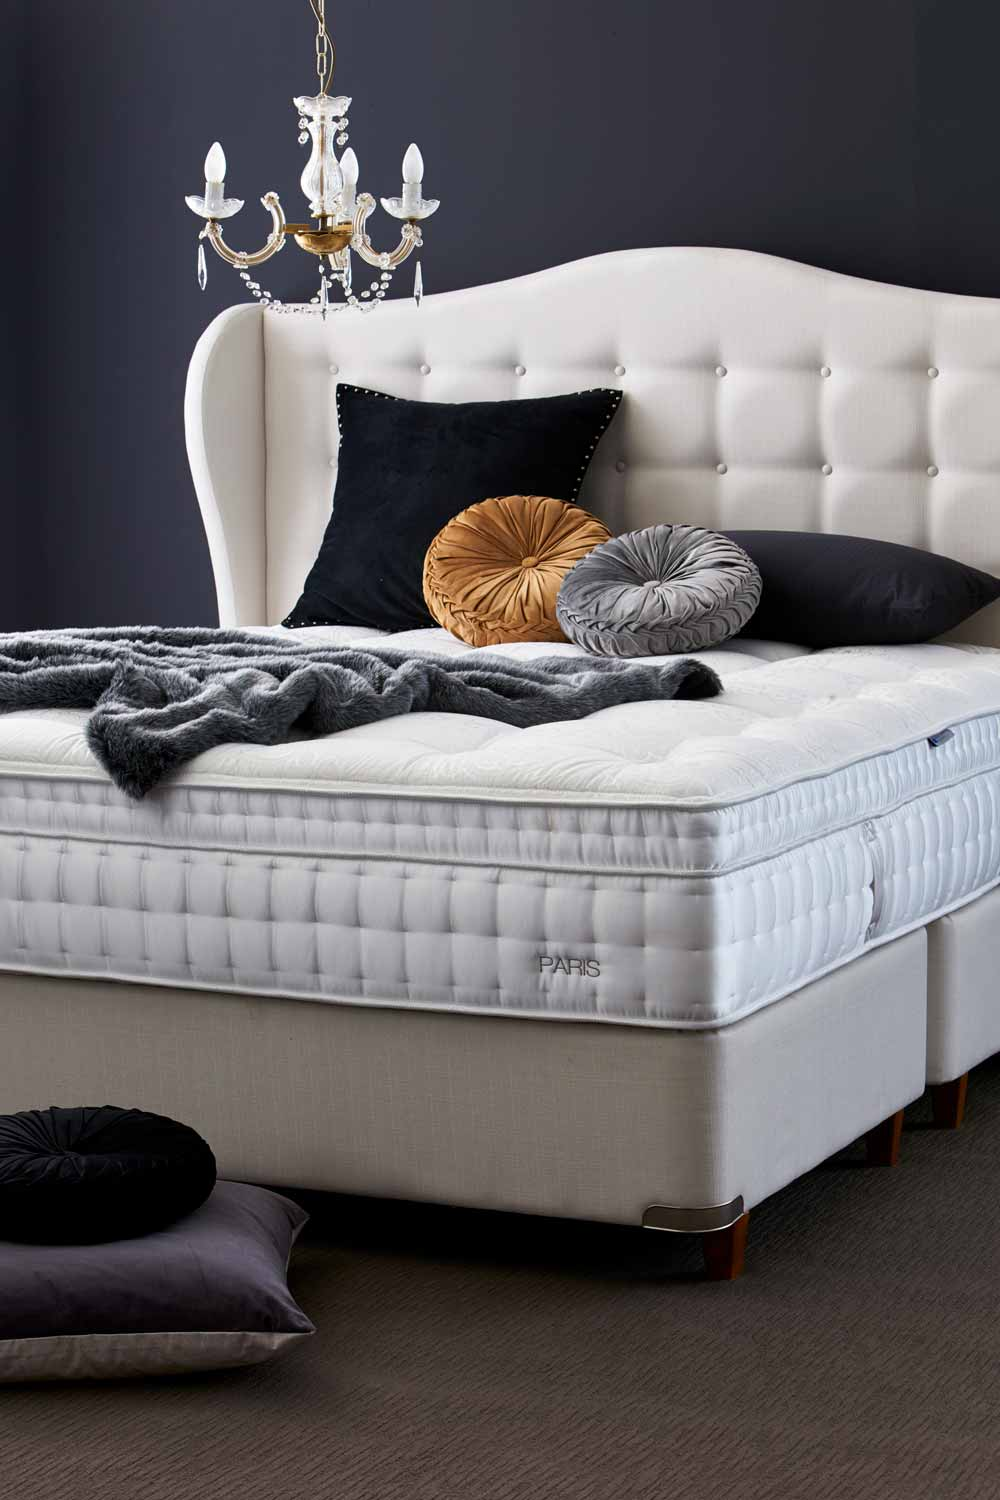 KING KOIL World Luxury Paris Mattress  Beds  mattresses